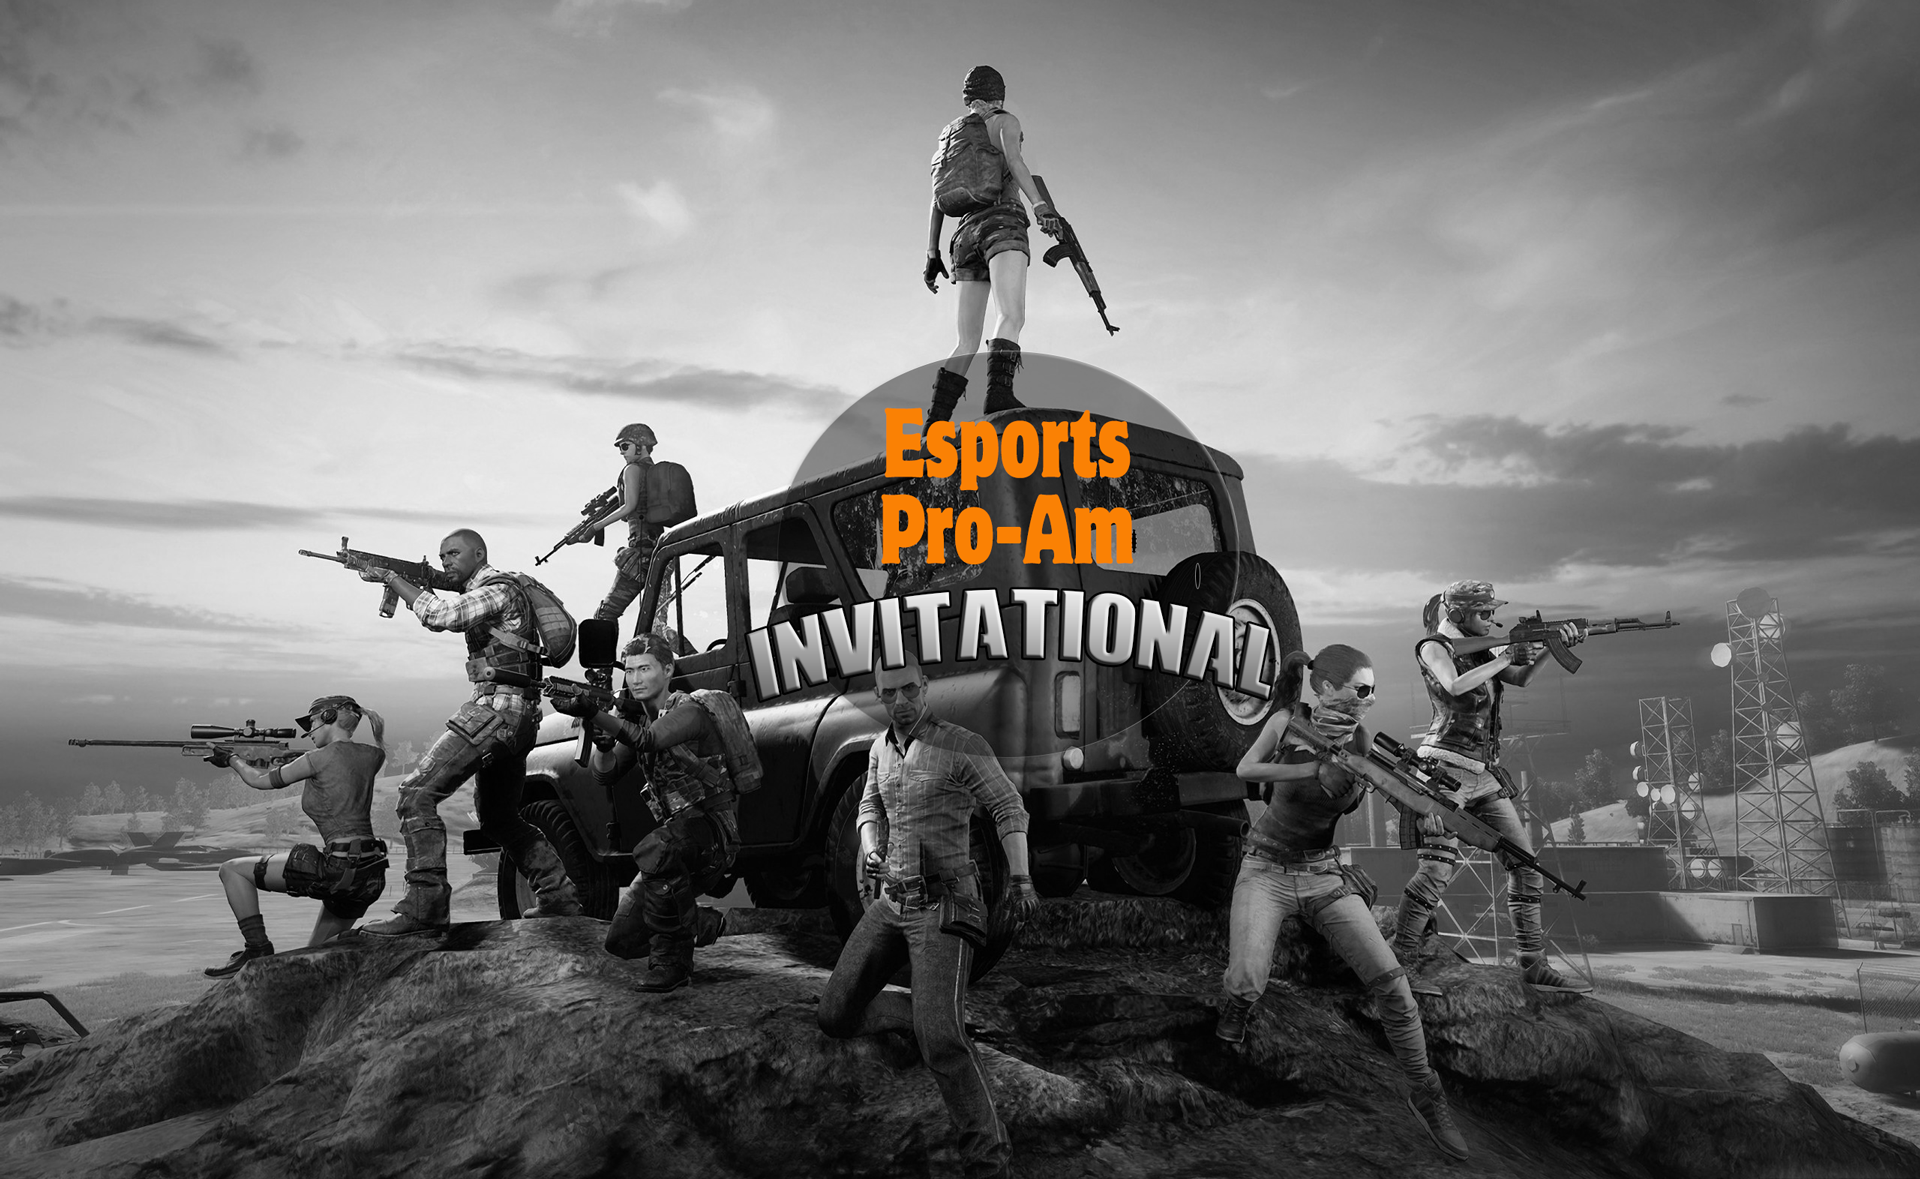 Esports Pro-Am Invitational